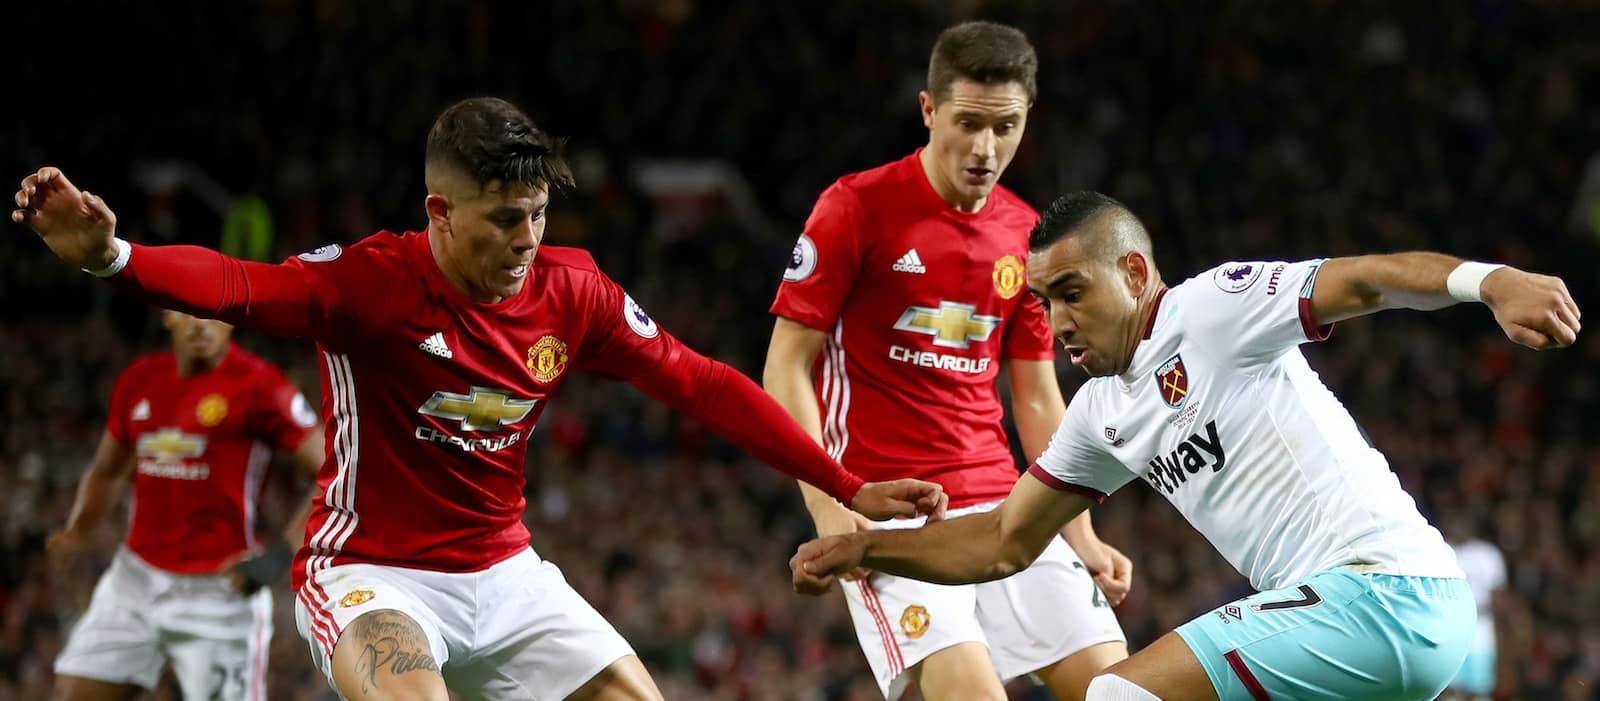 Jose Mourinho confirms Ander Herrera and Marcos Rojo are injured for Wolverhampton Wanderers clash